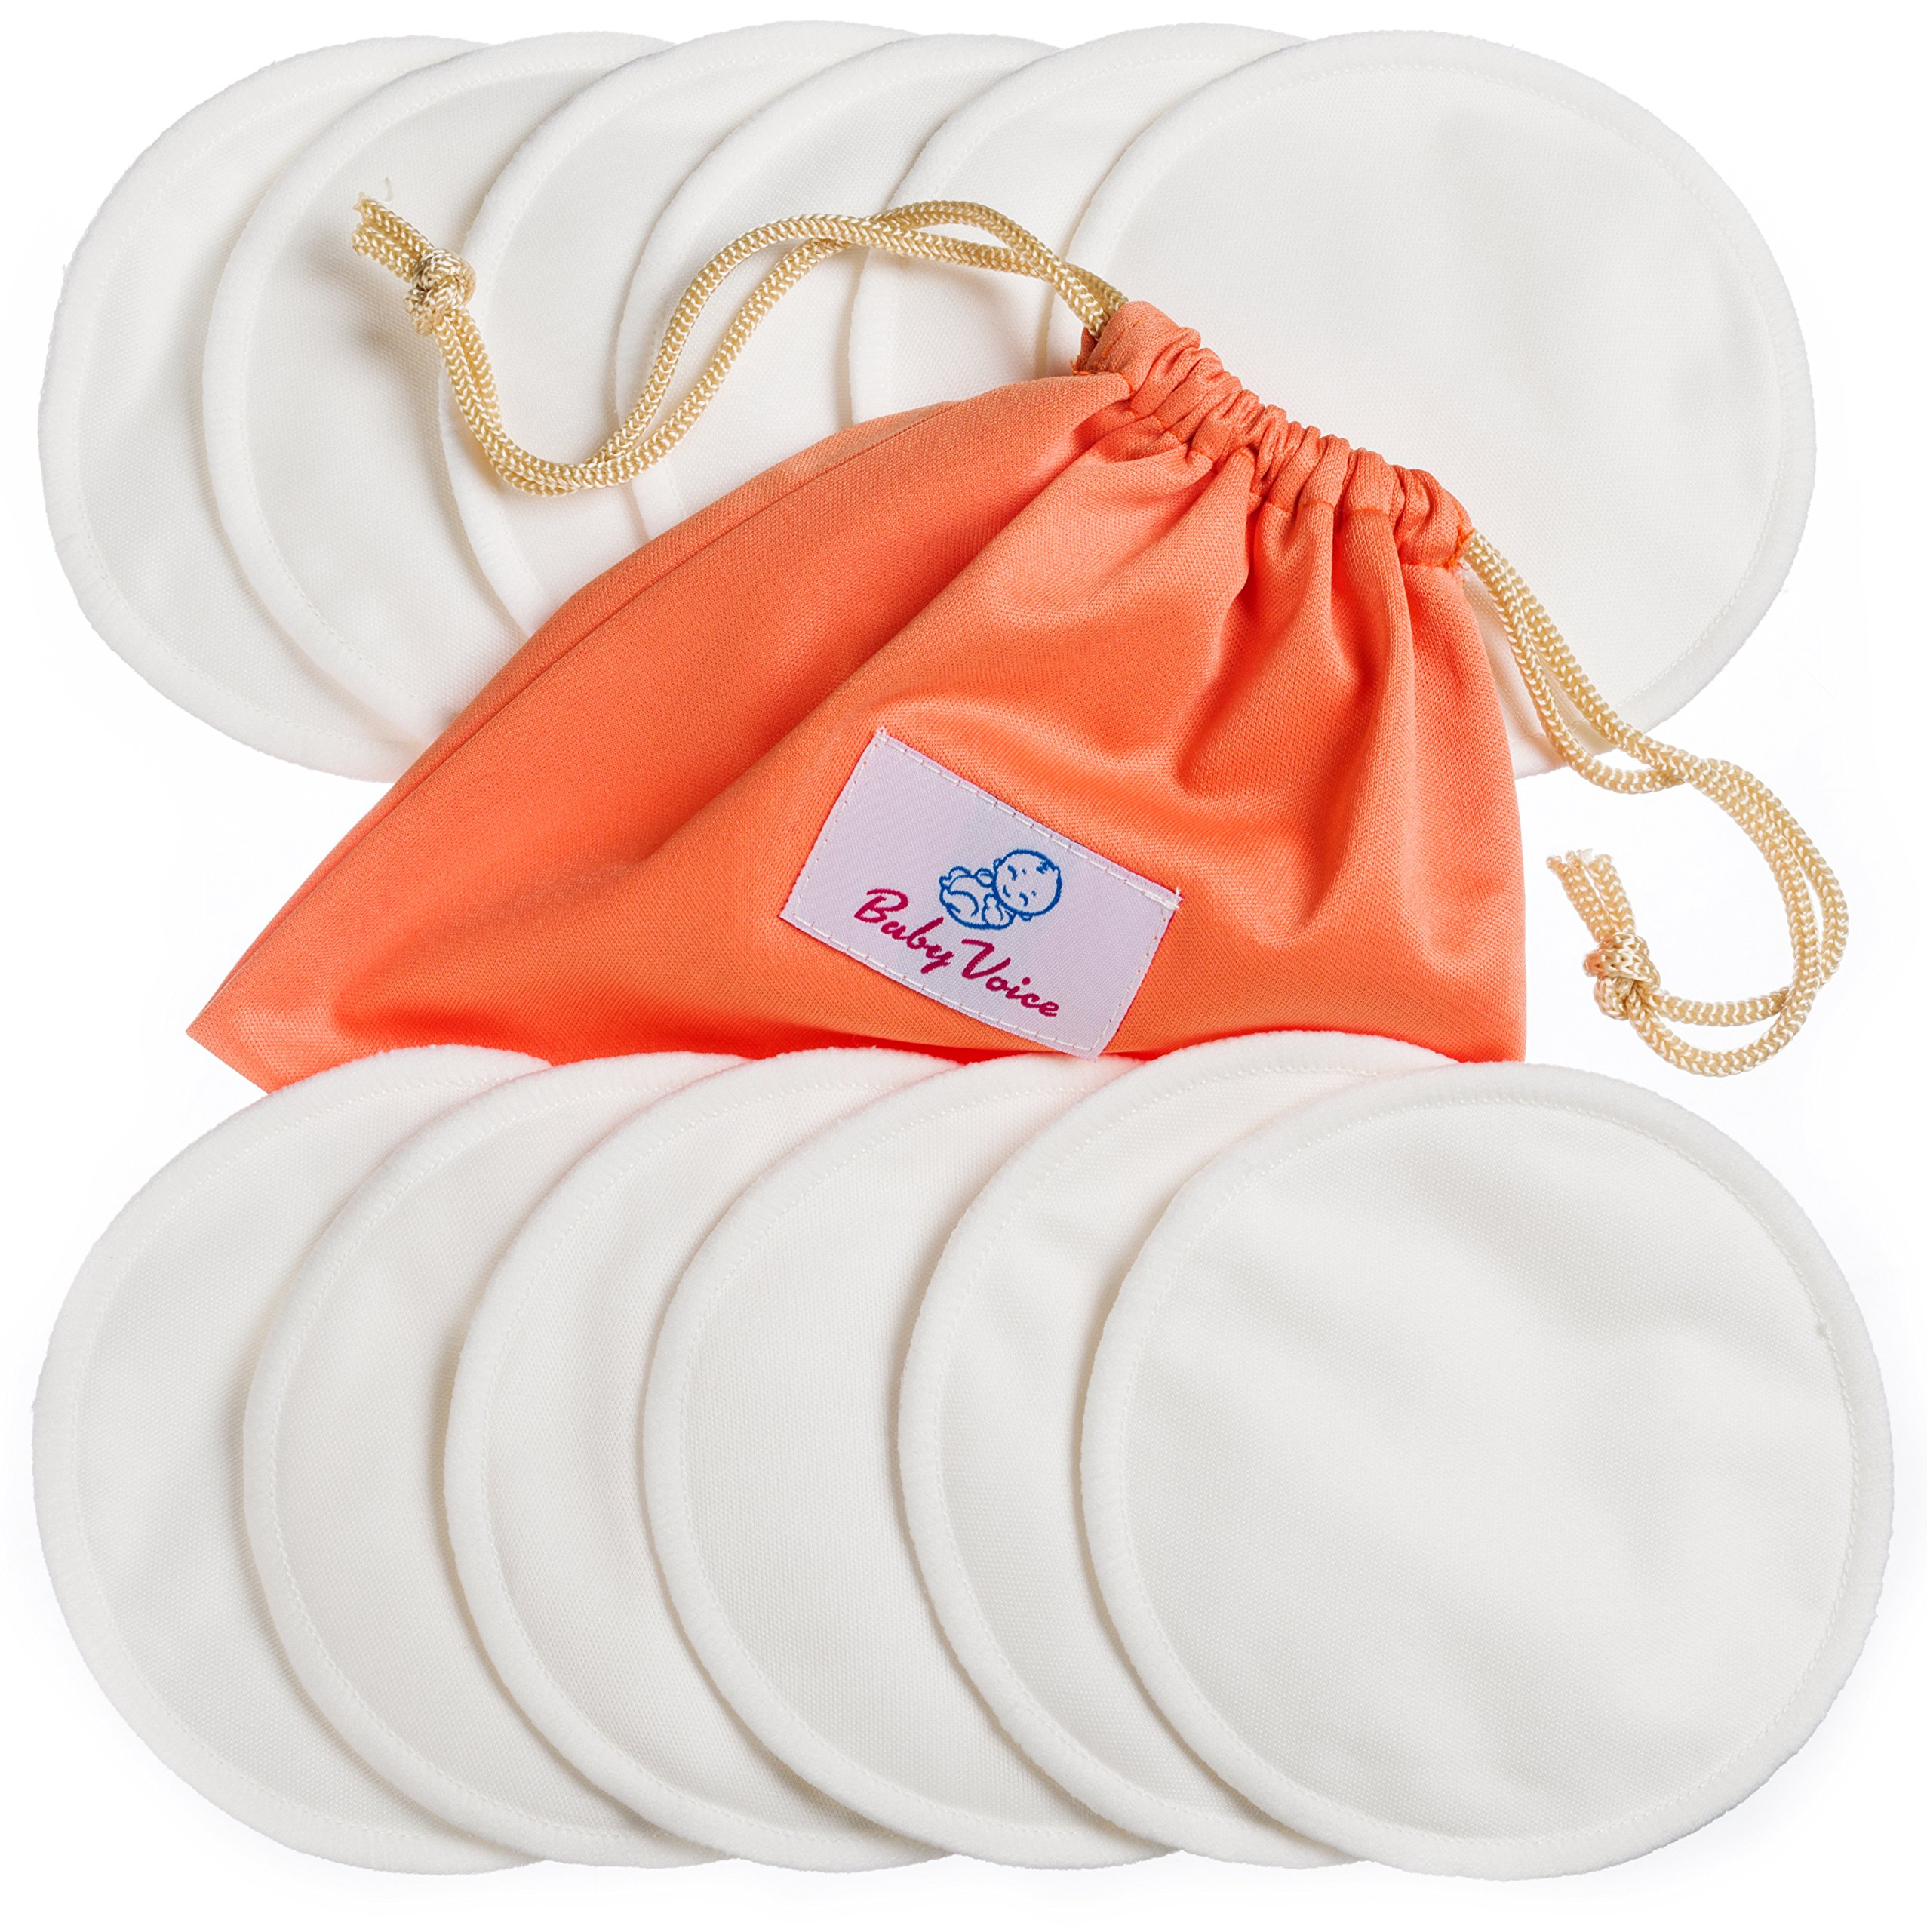 Nursing Pads 12 Pack | Organic Bamboo | Laundry & Travel Bag | Breastfeeding Guide Ebook | Washable & Reusable Breast Pads by BabyVoice (Medium, White) by BabyVoice